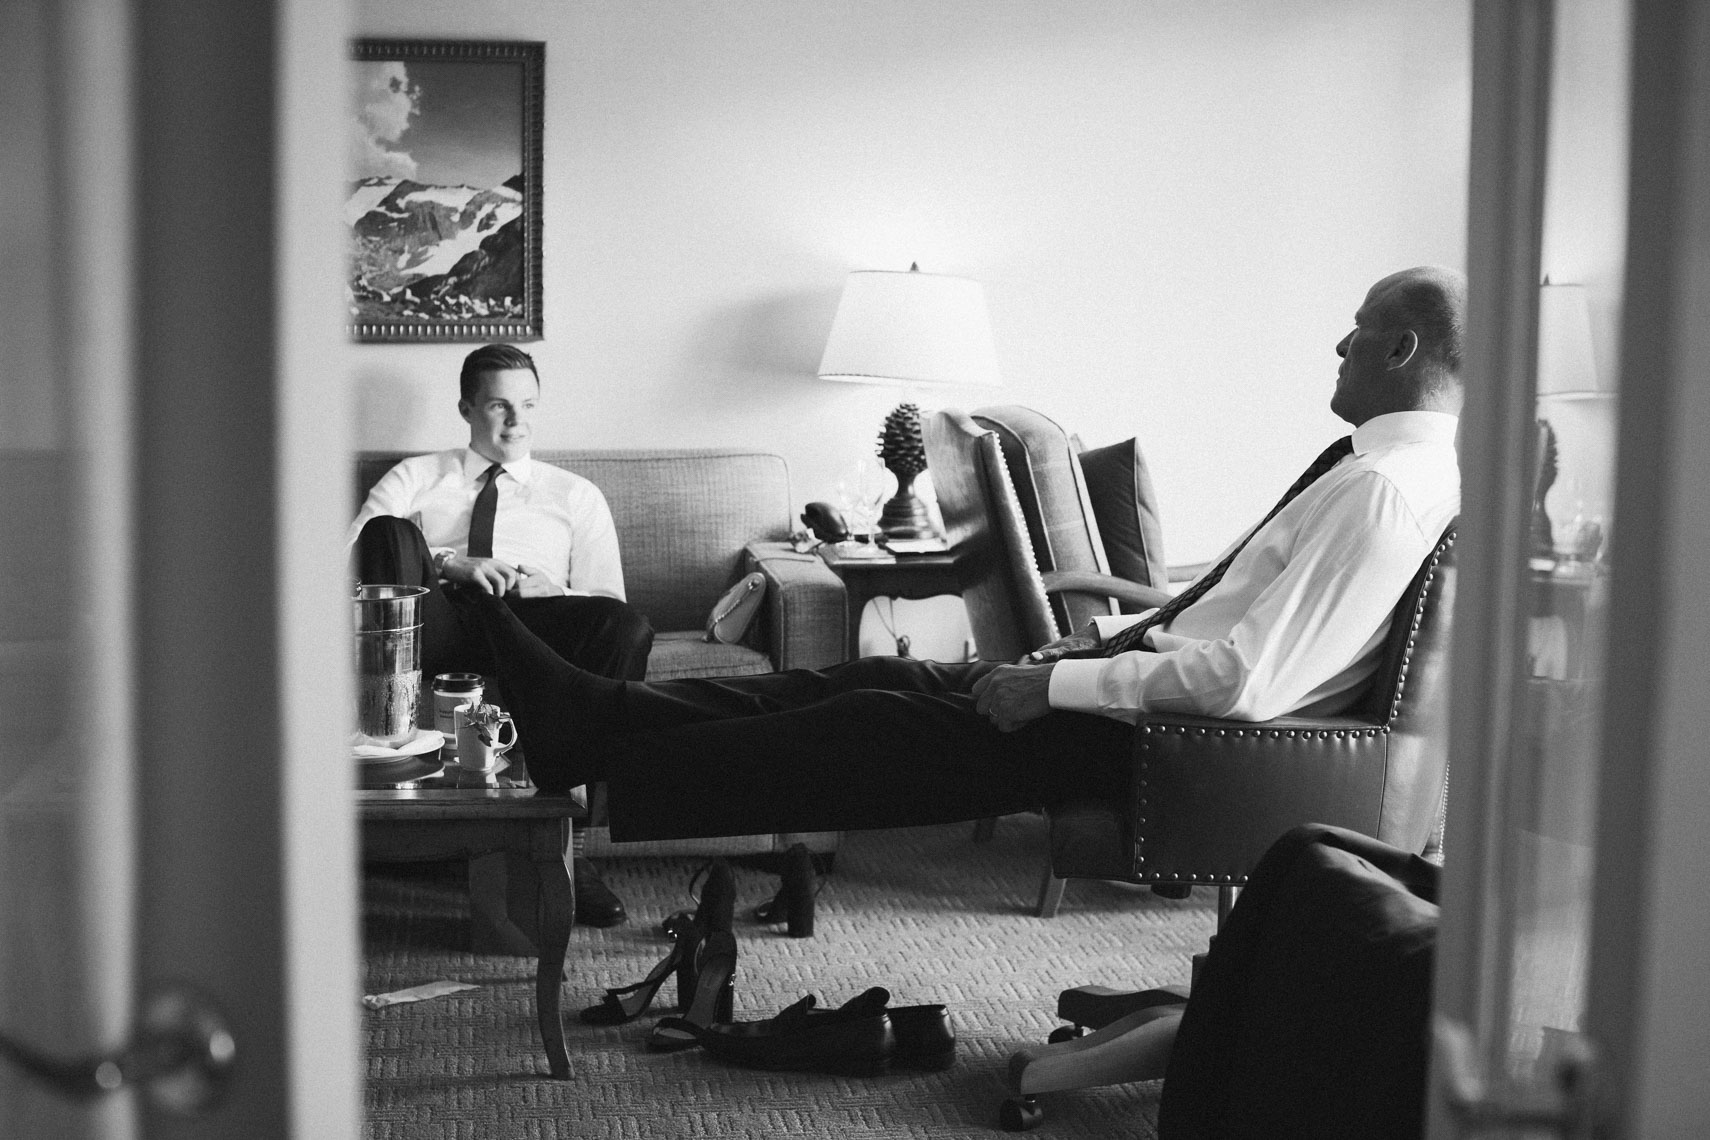 Photojournalist style wedding photography of father of bride with groomsman in hotel room before wedding